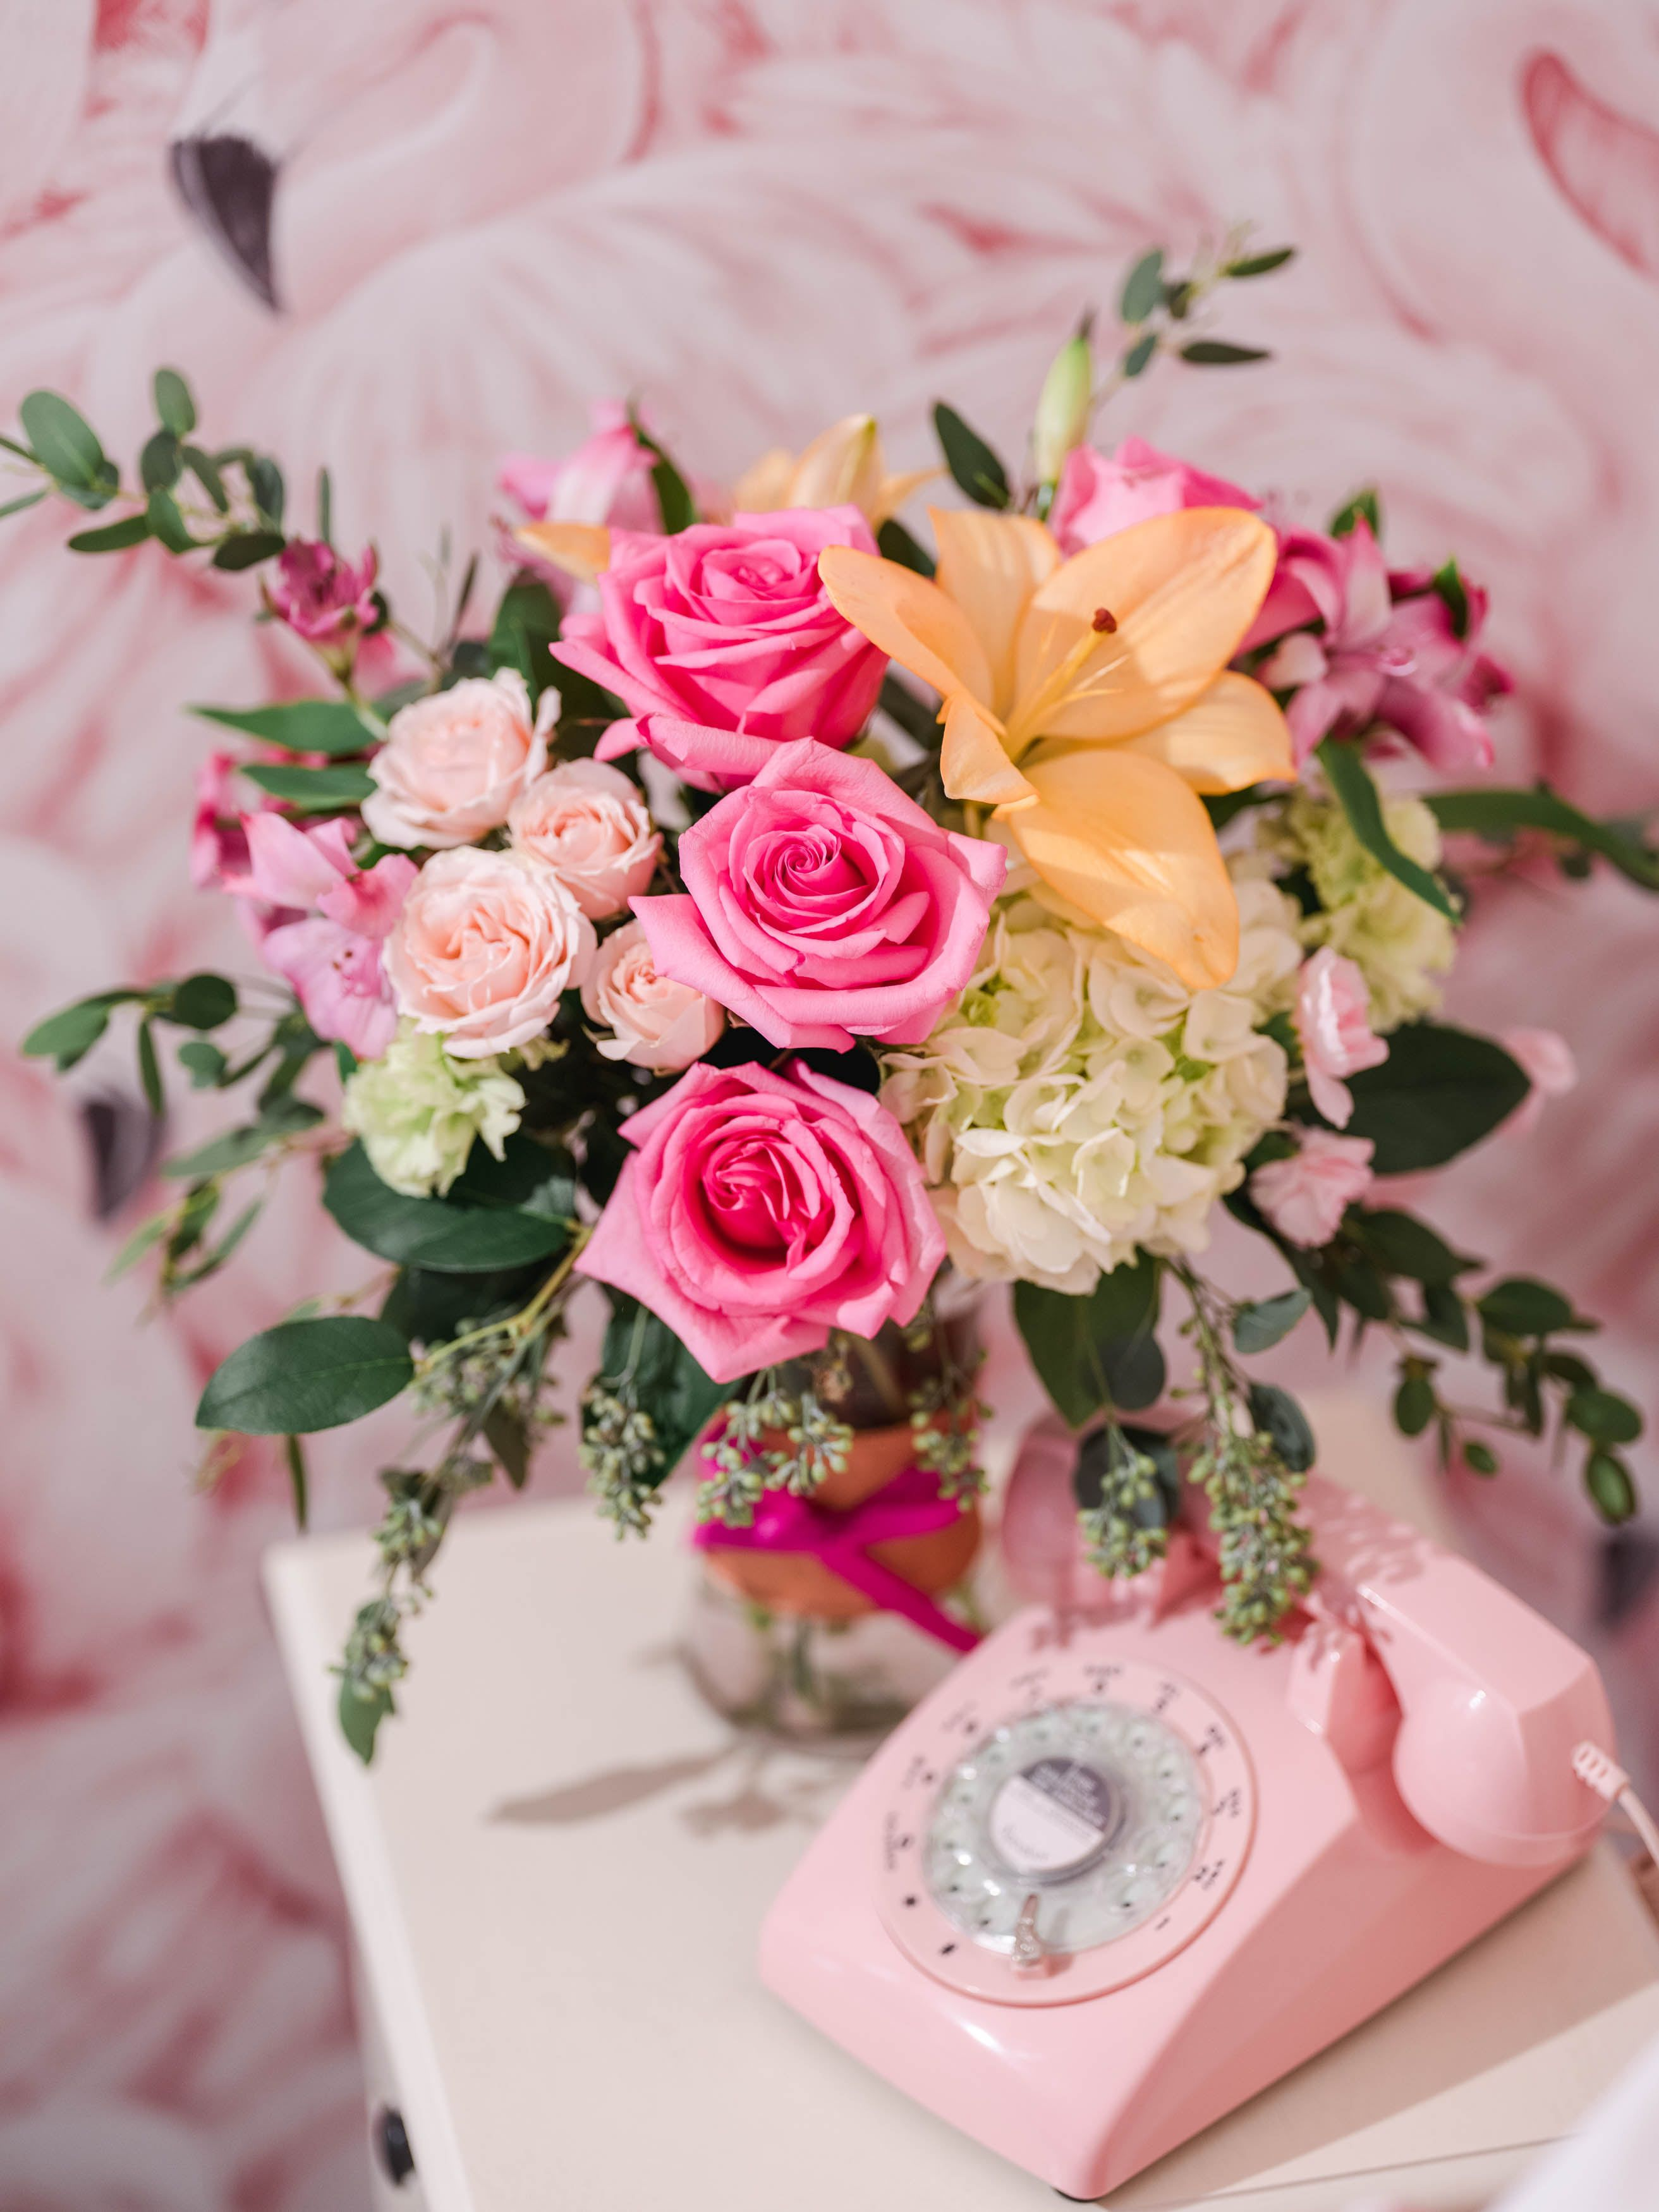 Blush Life Bouquet in 2020 (With images) Valentine's day